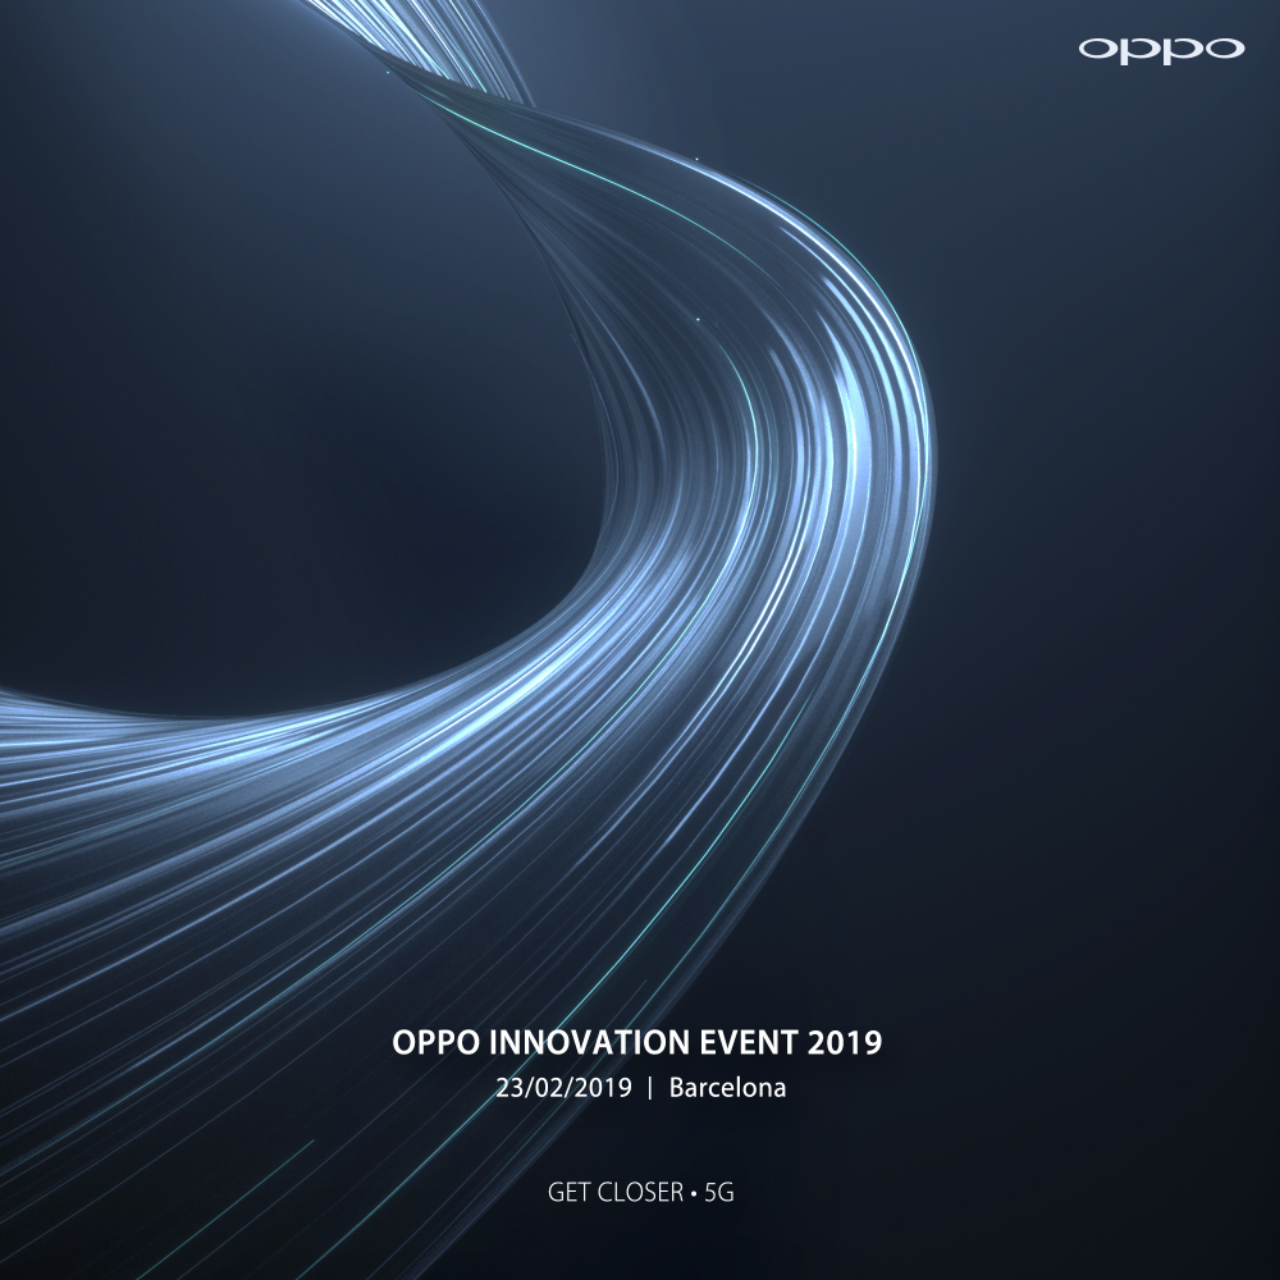 OPPO 2019 Innovation Event Offers Partners Chance to 'Get Closer'The exploration of 5G & 10x lossless Zoom